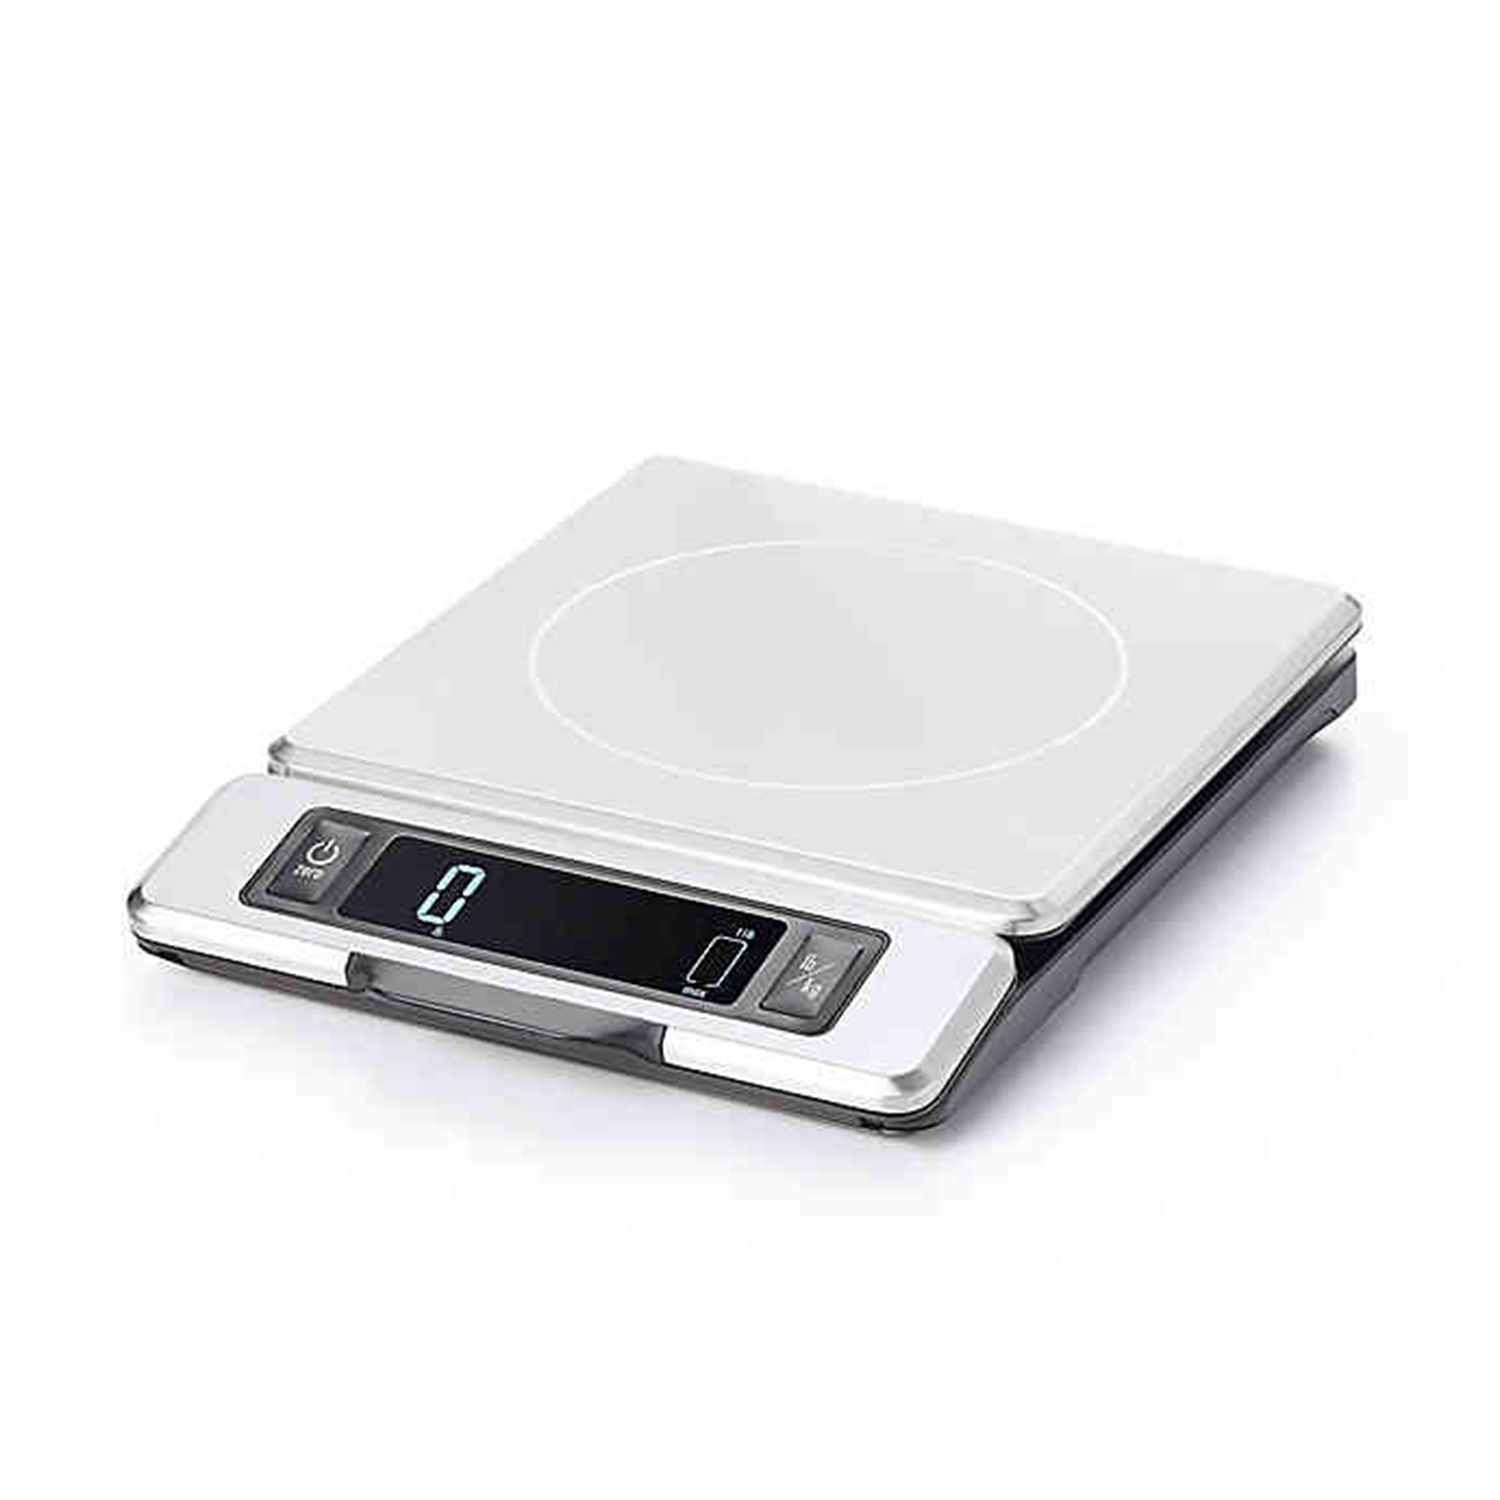 OXO Good Grips Stainless Steel Scale